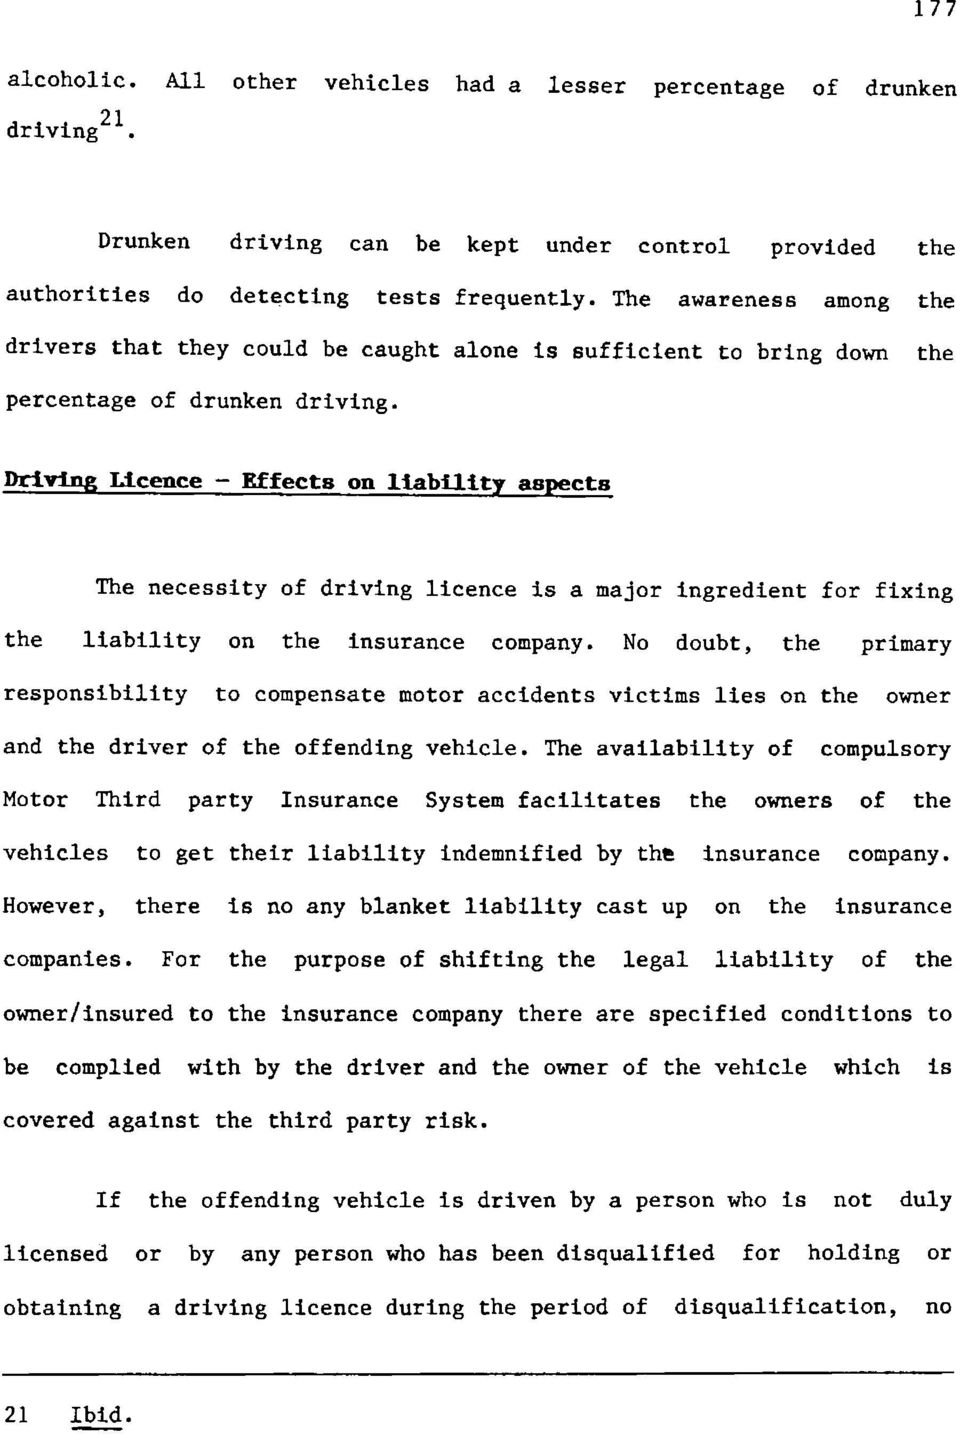 Qriving Licence f Effects on liability aspects The necessity of driving licence is a major ingredient for fixing the liability on the insurance company.